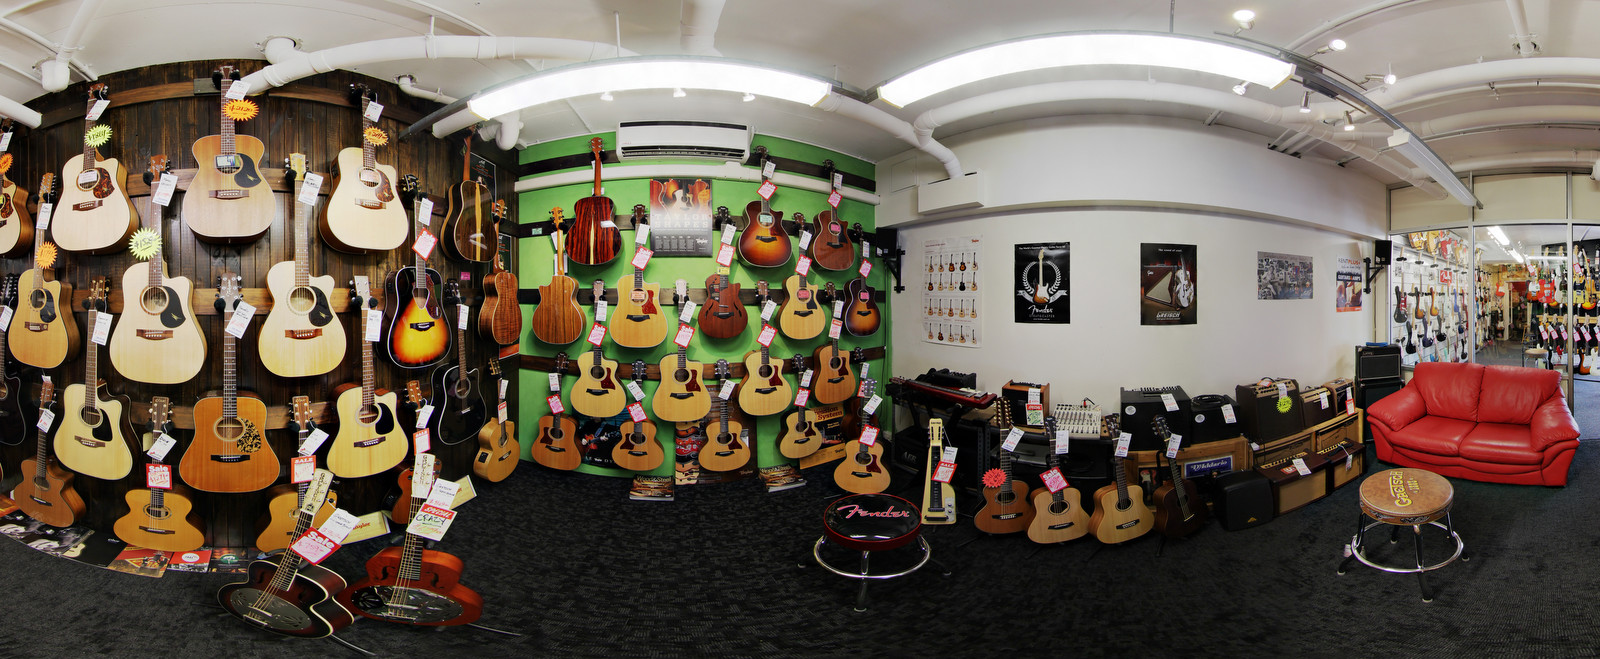 The-Guitar-Centre